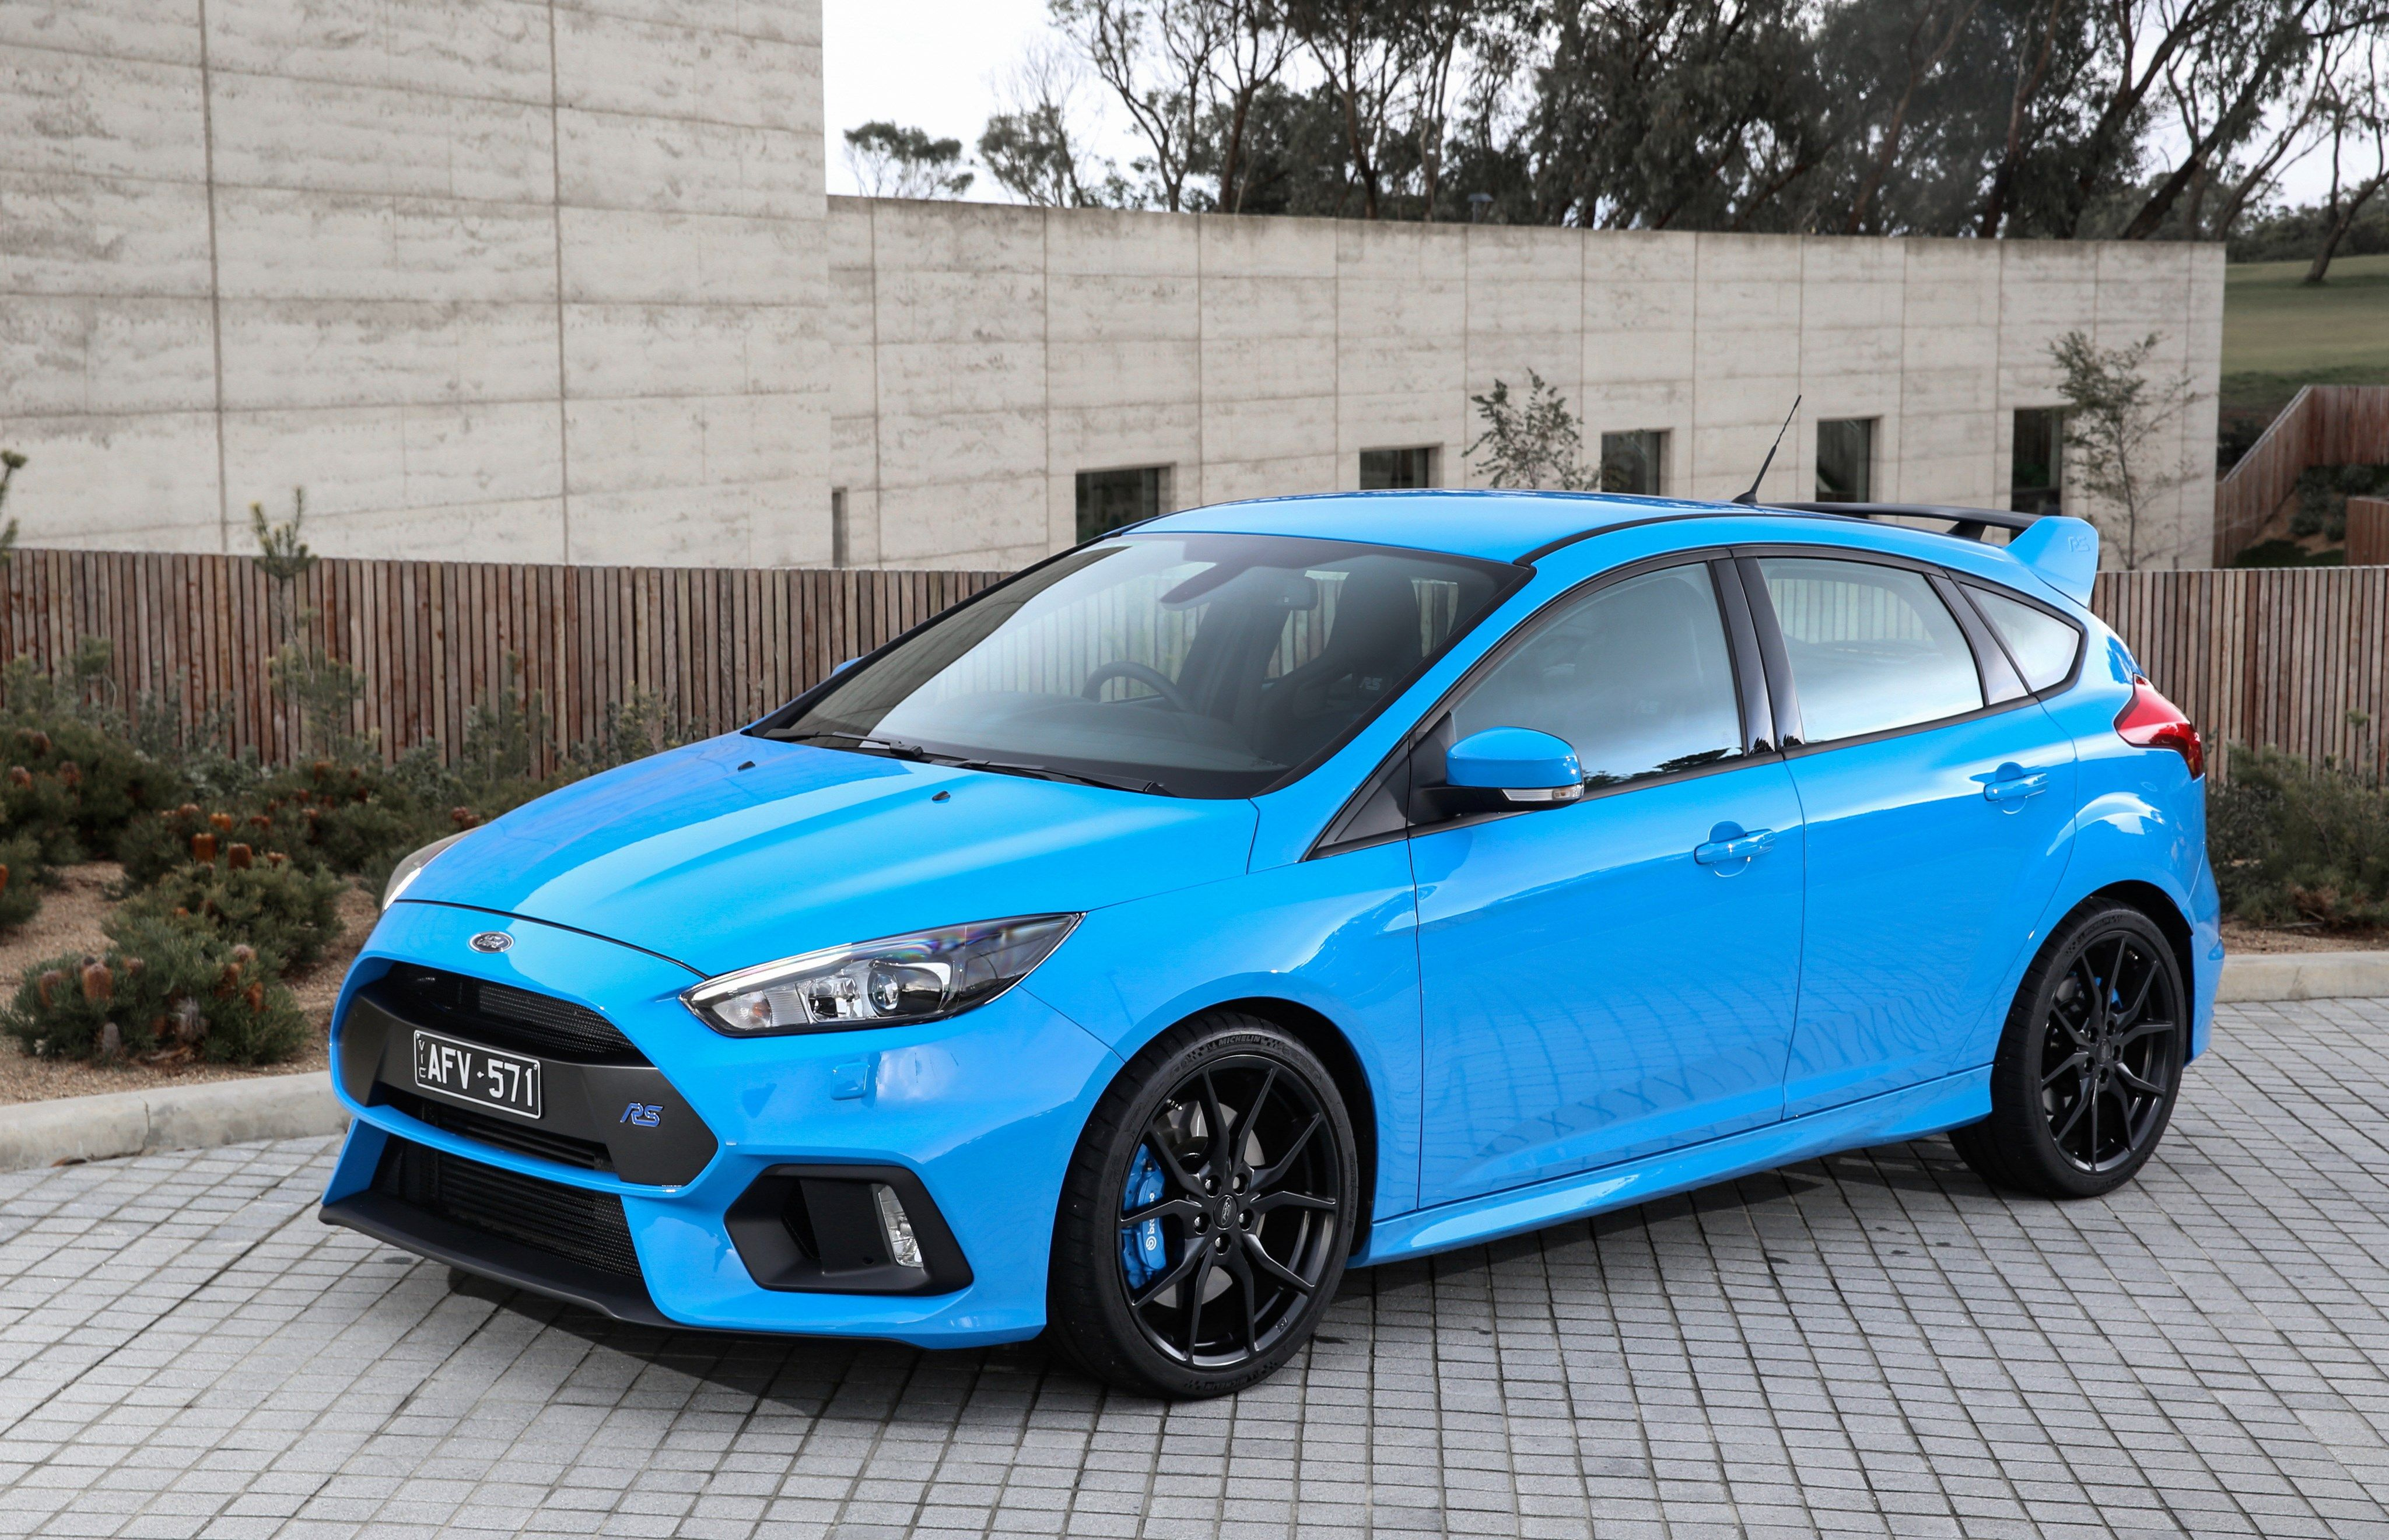 Free High Resolution Wallpaper Ford Focus Rs 4096x2641 1747 Kb